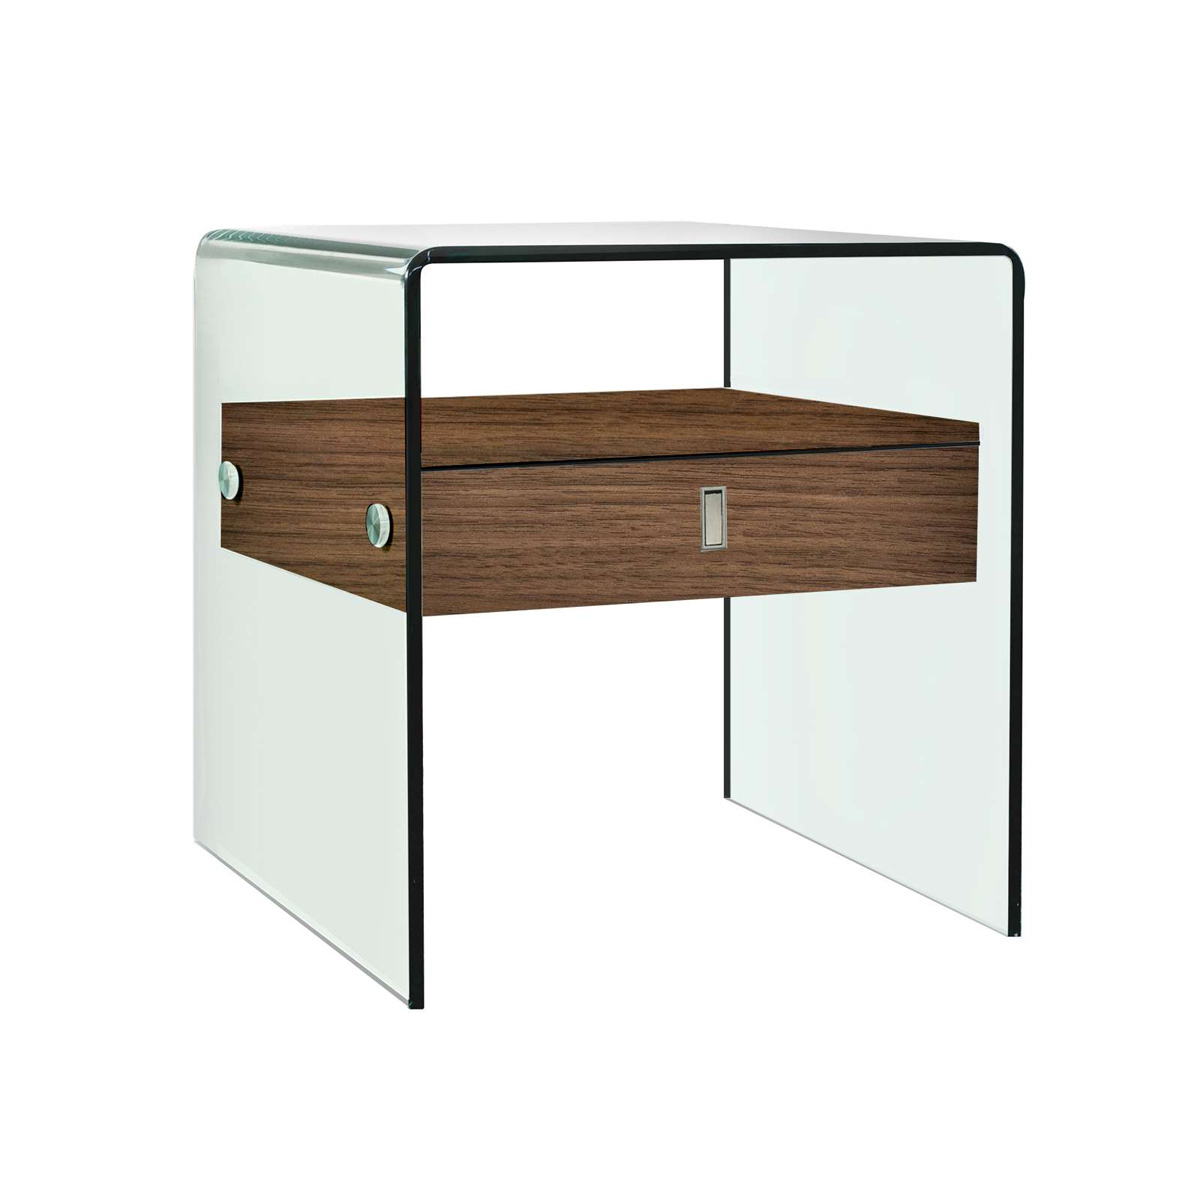 Bari CB-J052 end table from Casabianca